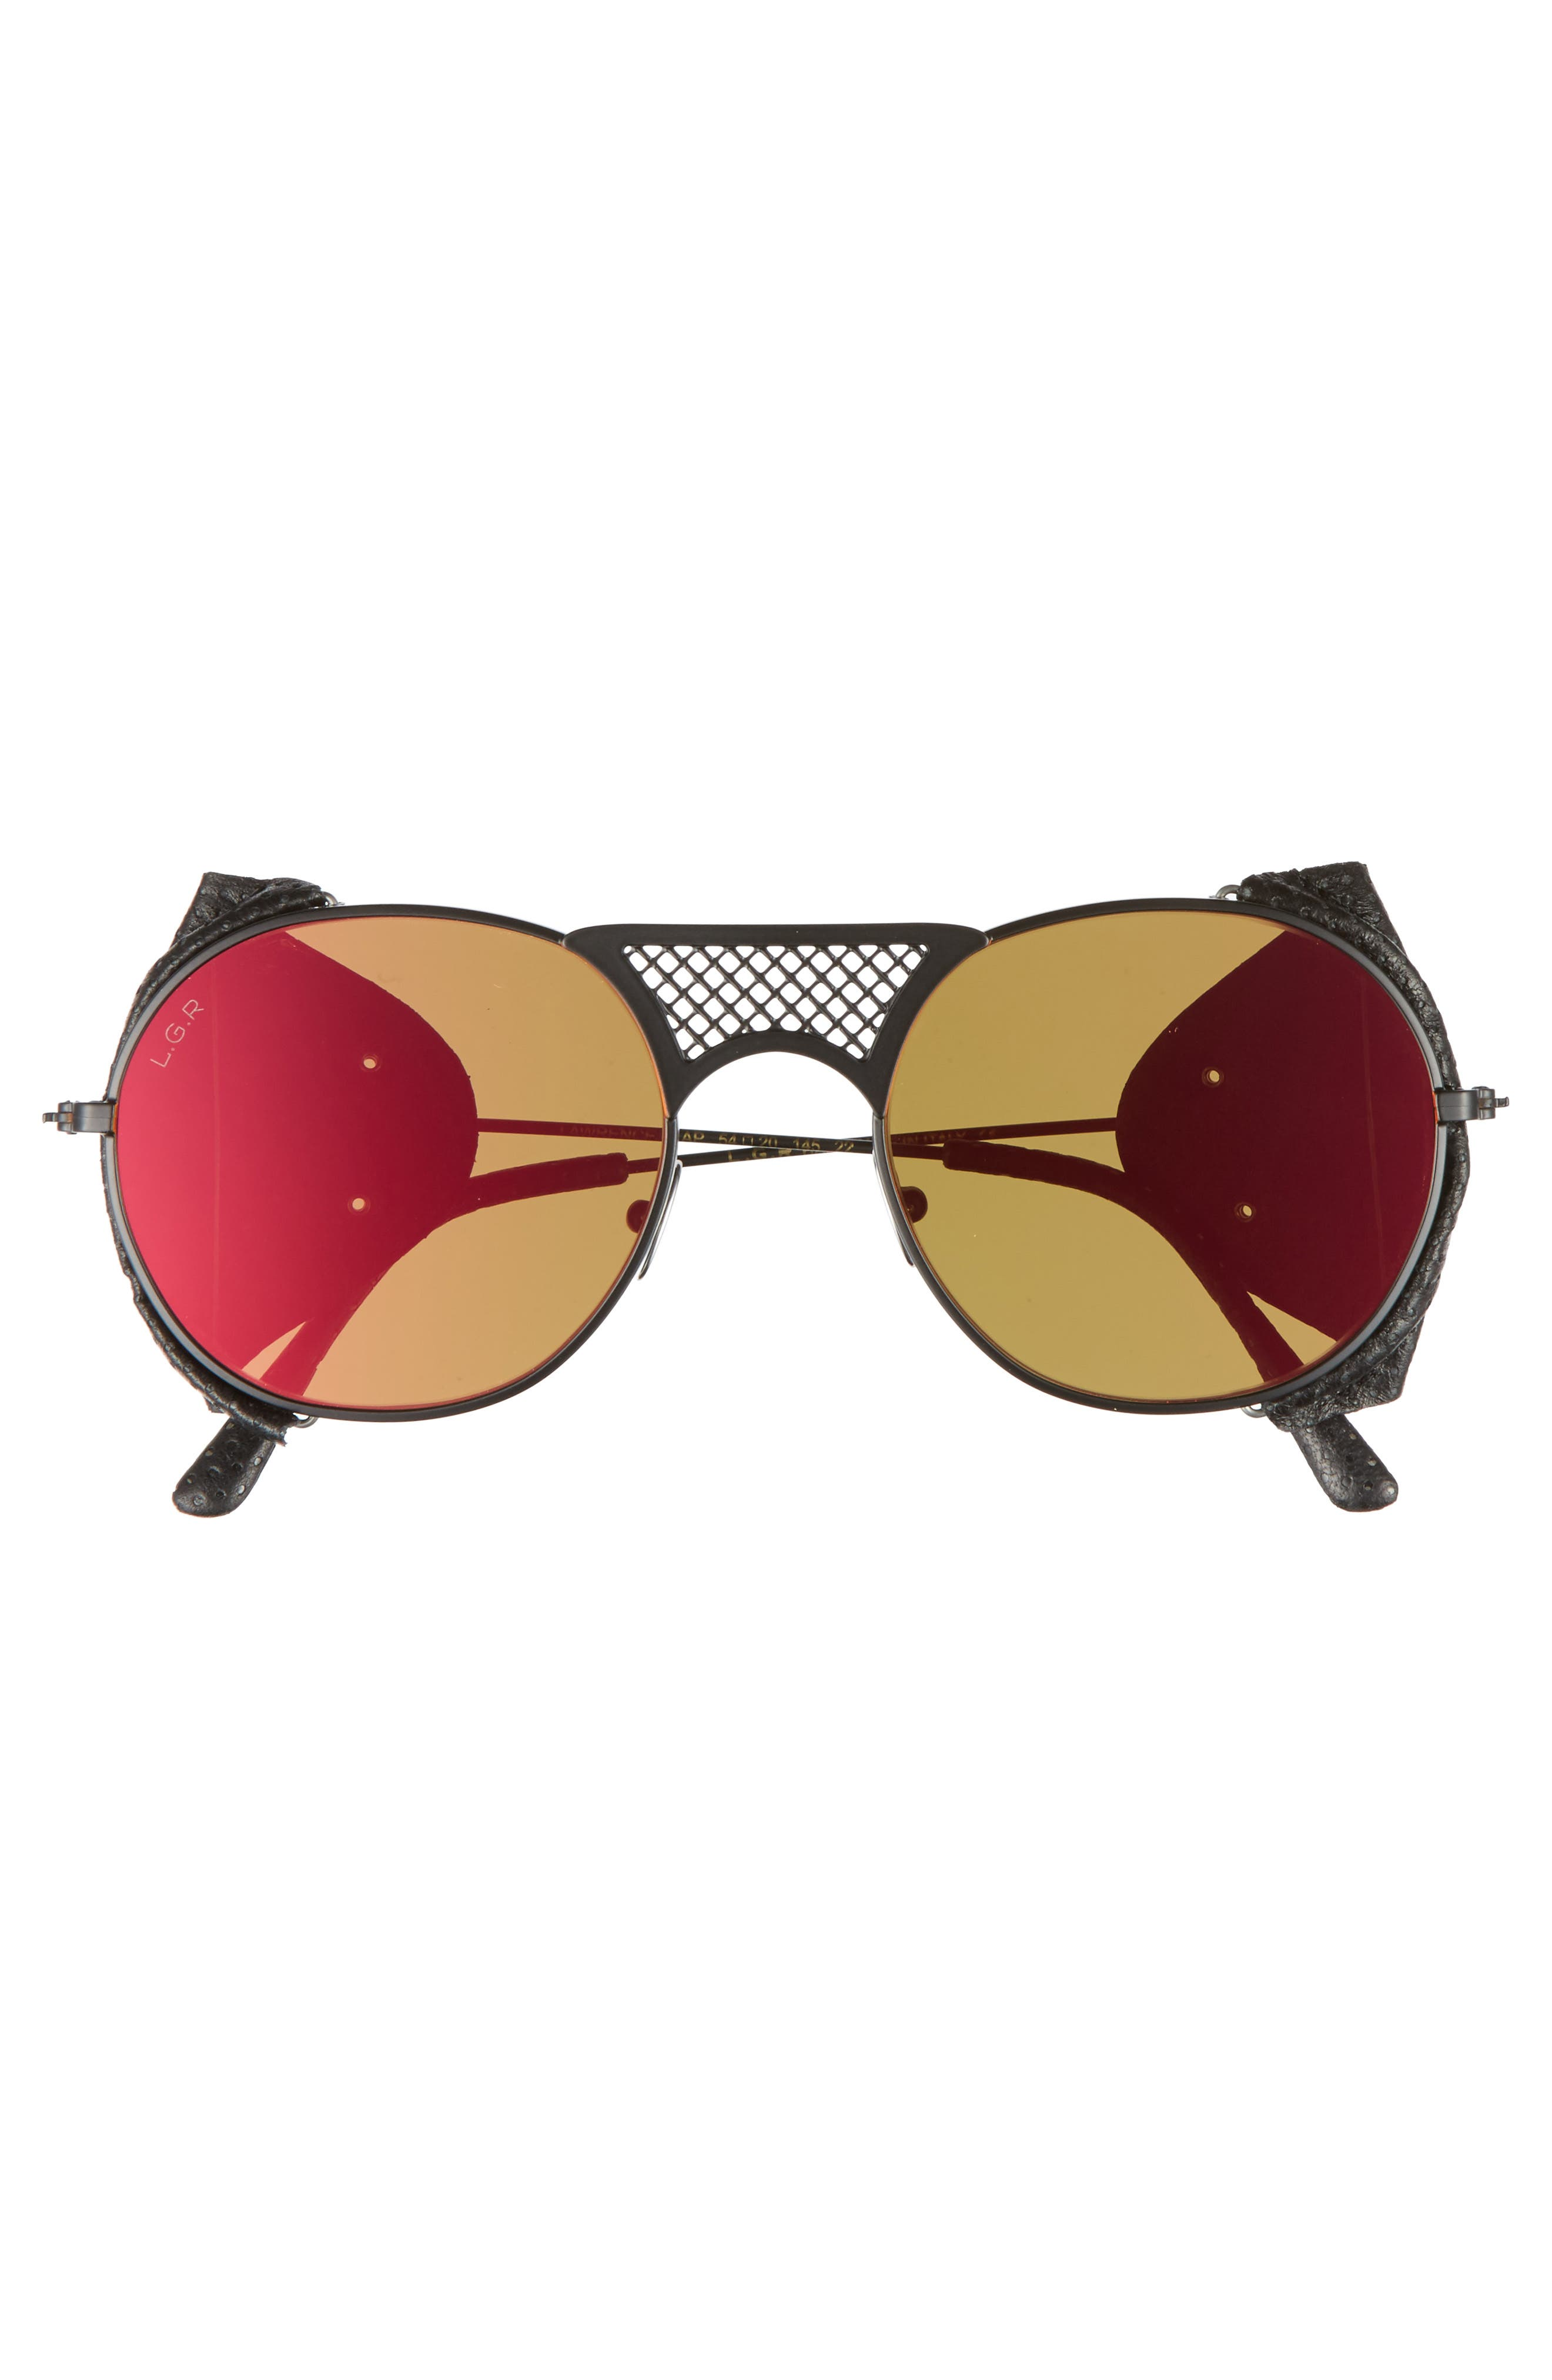 Lawrence 54mm Sunglasses,                             Alternate thumbnail 3, color,